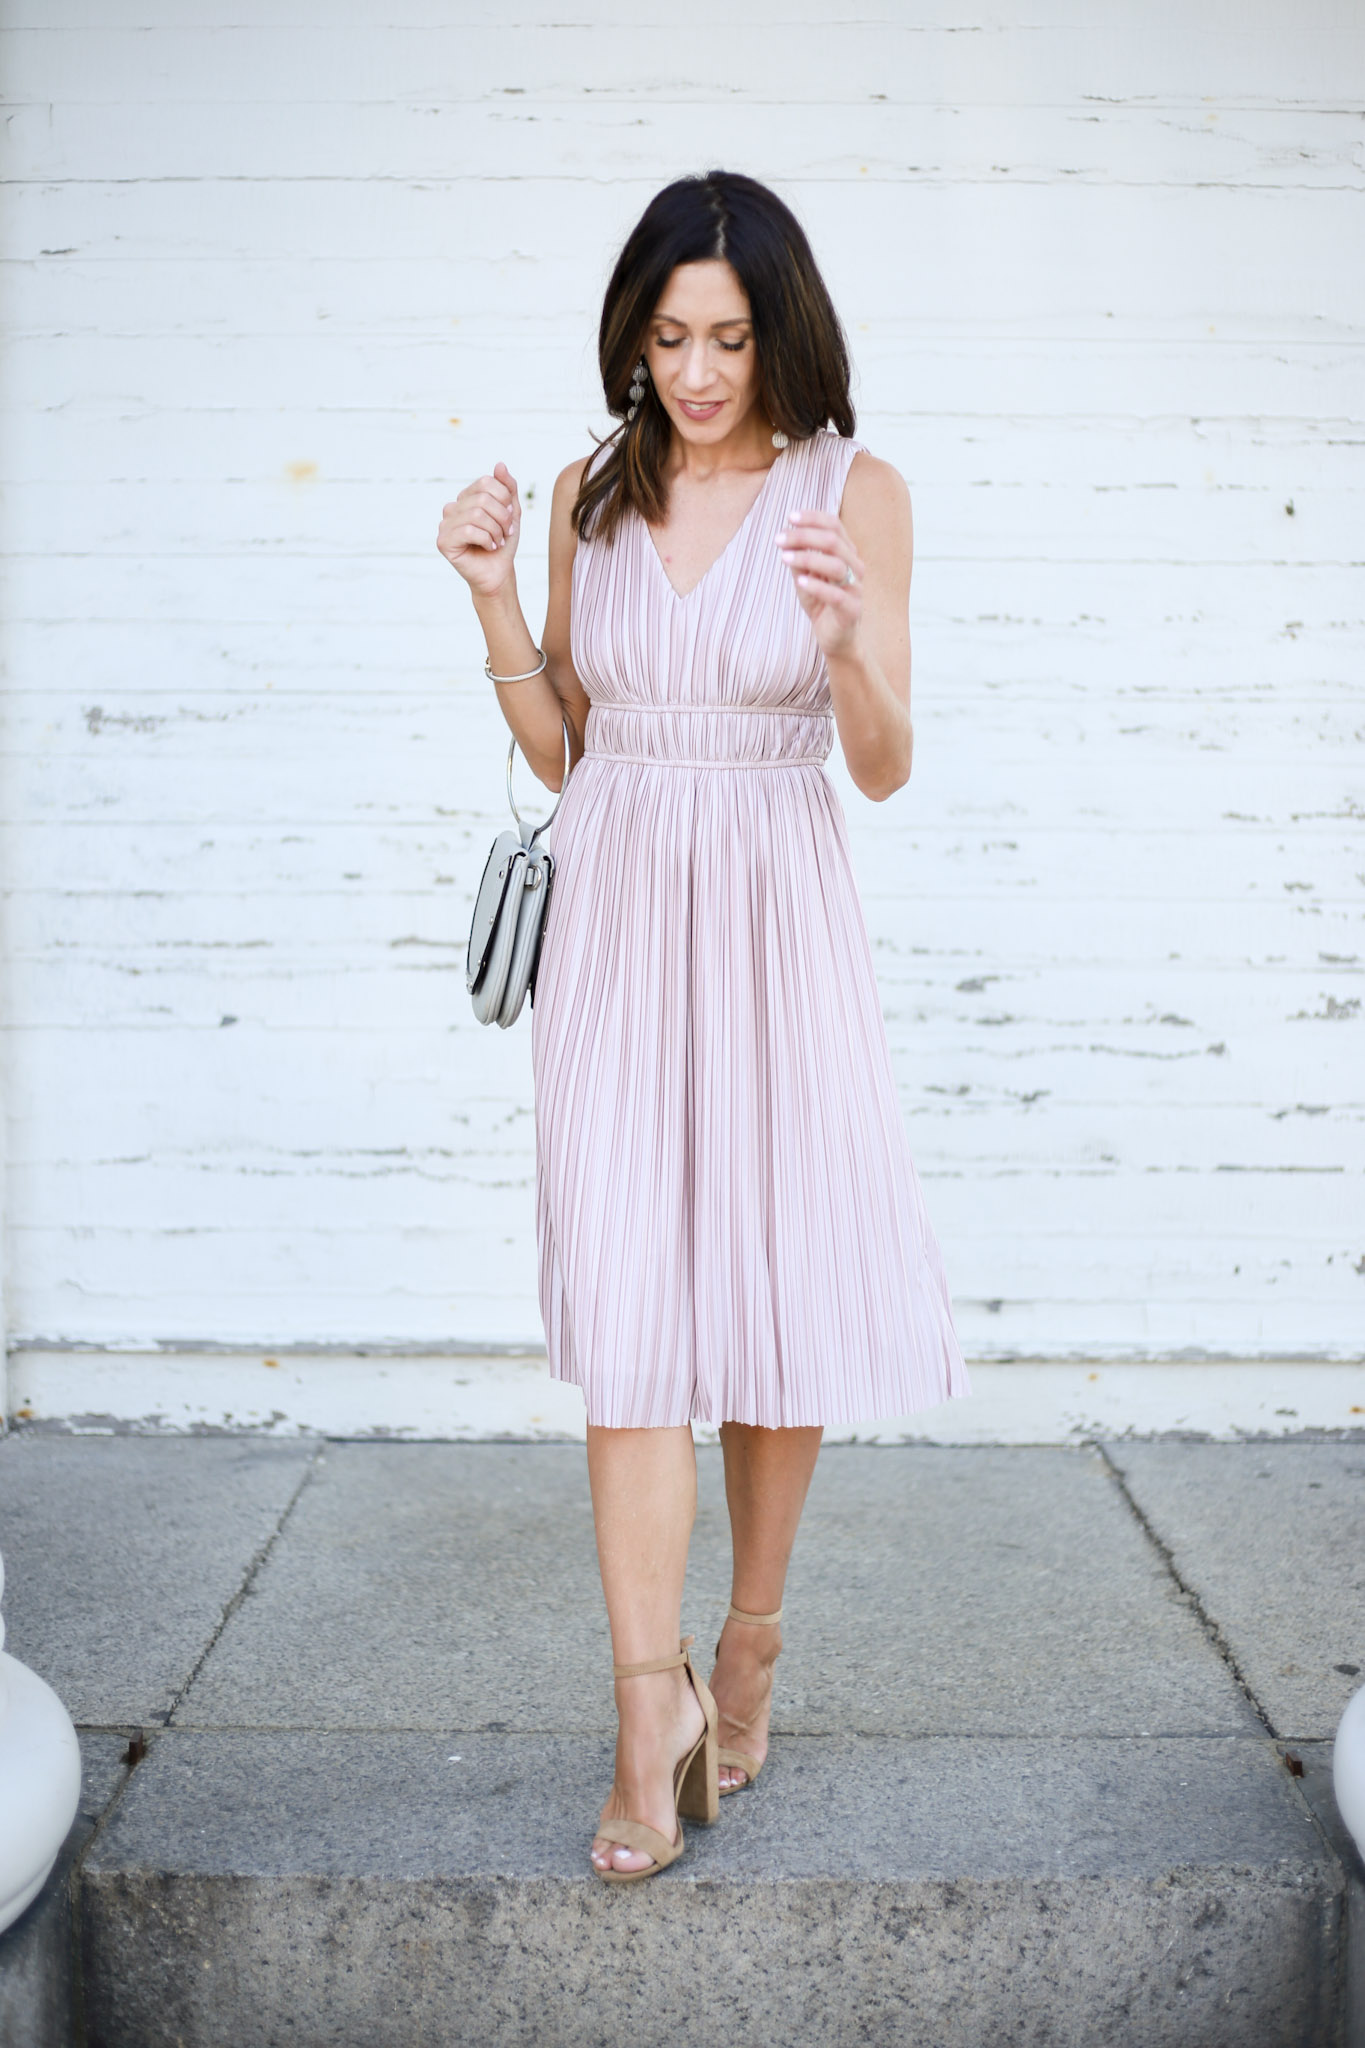 a must have dress for any special occasion - Perfect Affordable Dress For a Summer Wedding by Boston fashion blogger Living Life Pretty